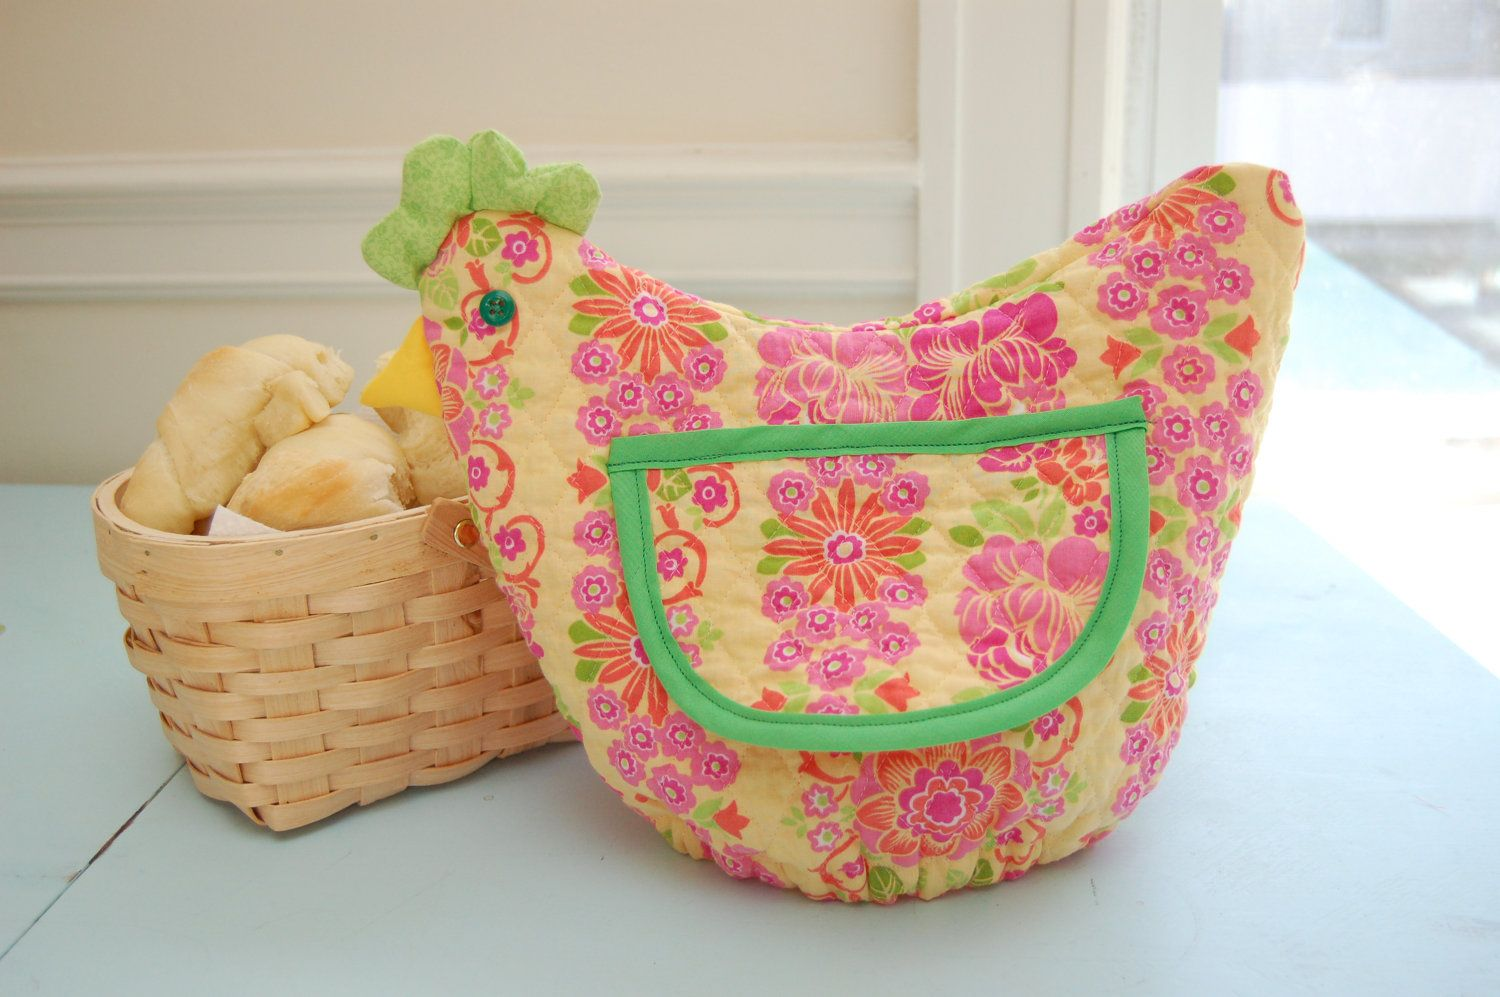 Funky Chicken - Roll Basket Cover - Makes a great gift! #thanksgiving #christmas #gift